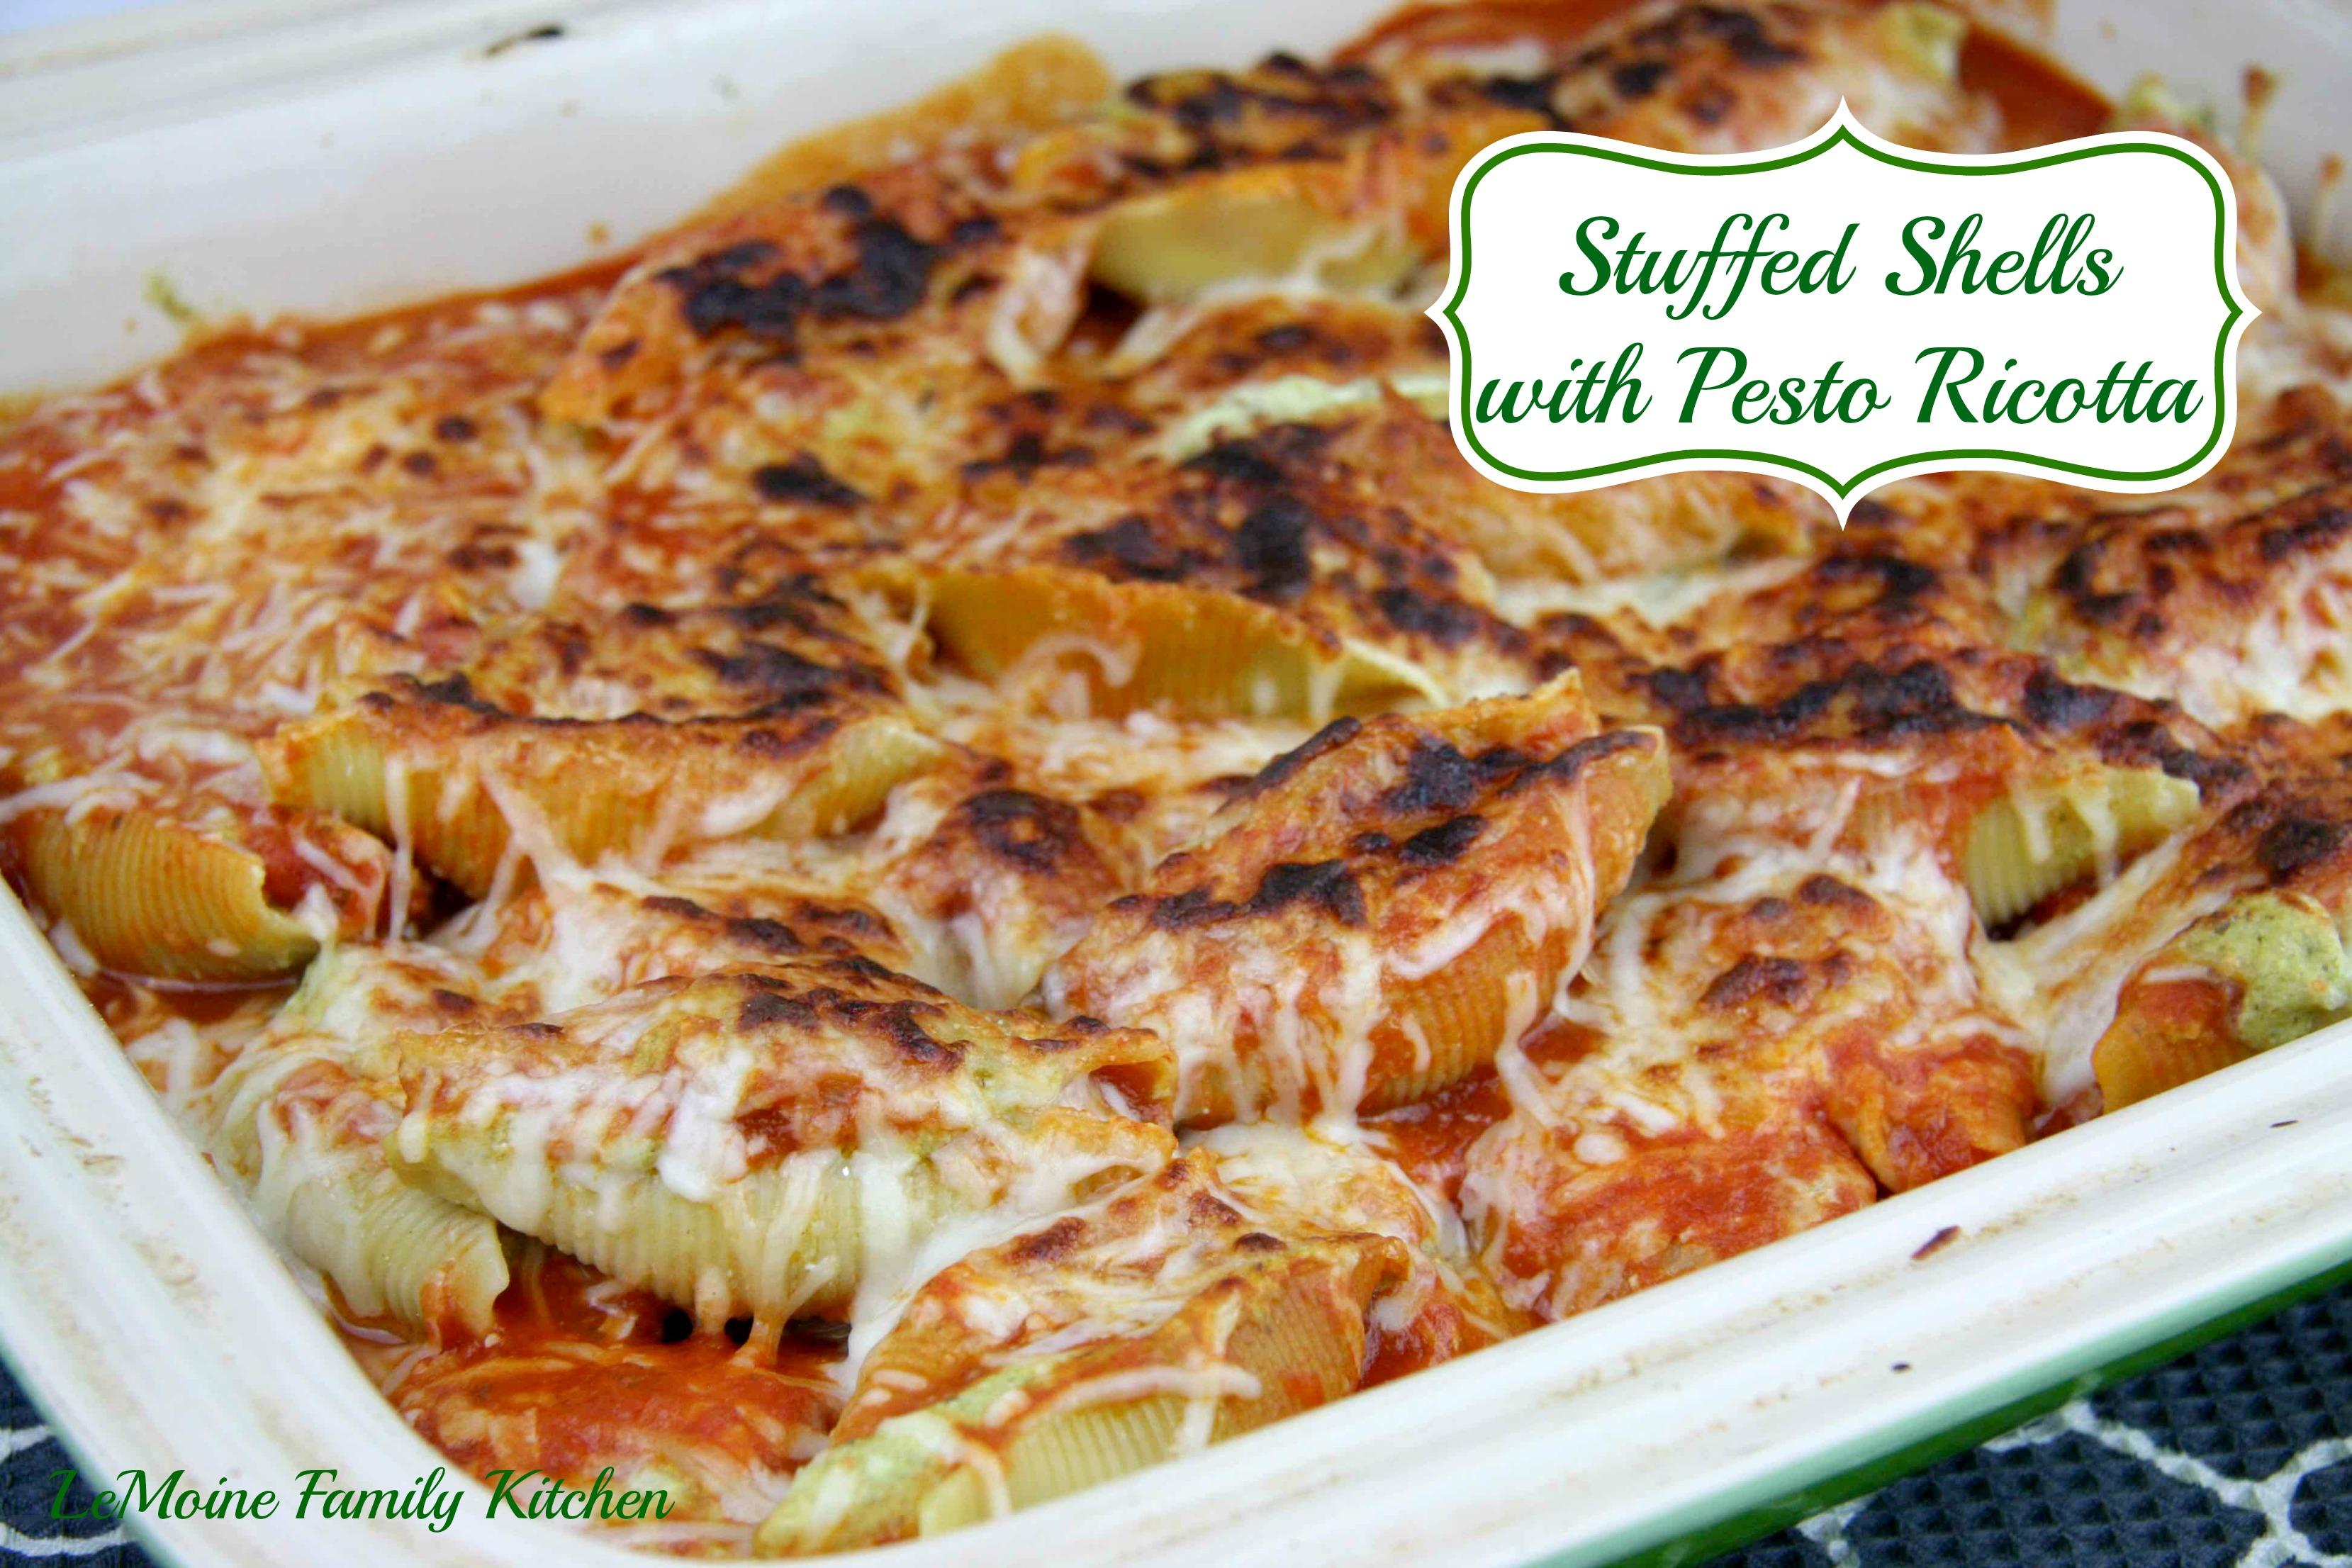 Stuffed Shells with Pesto Ricotta | LeMoine Family Kitchen #pasta #italian #stuffedshells #easydinner